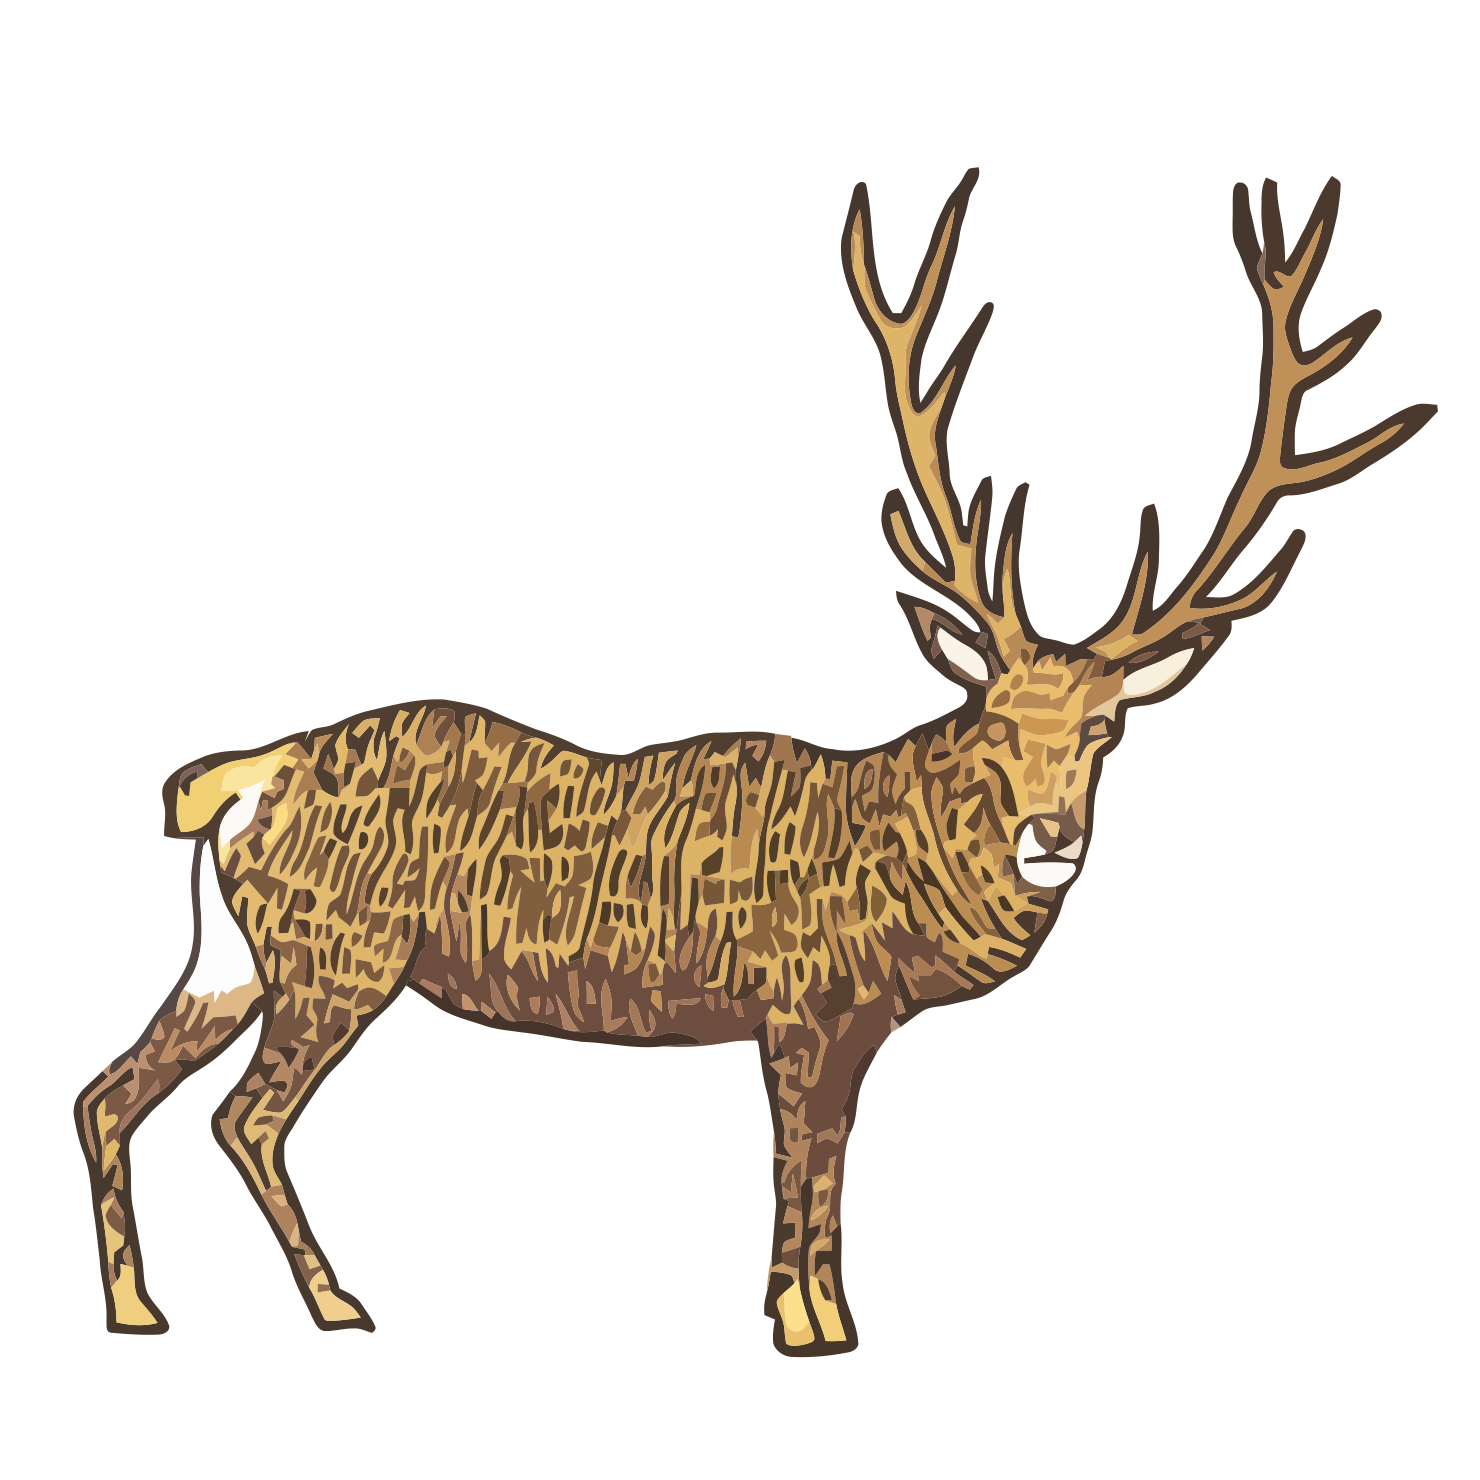 Polish - Noble deer - art, draw, drawings, vectorized, vector, image, artwork, paints